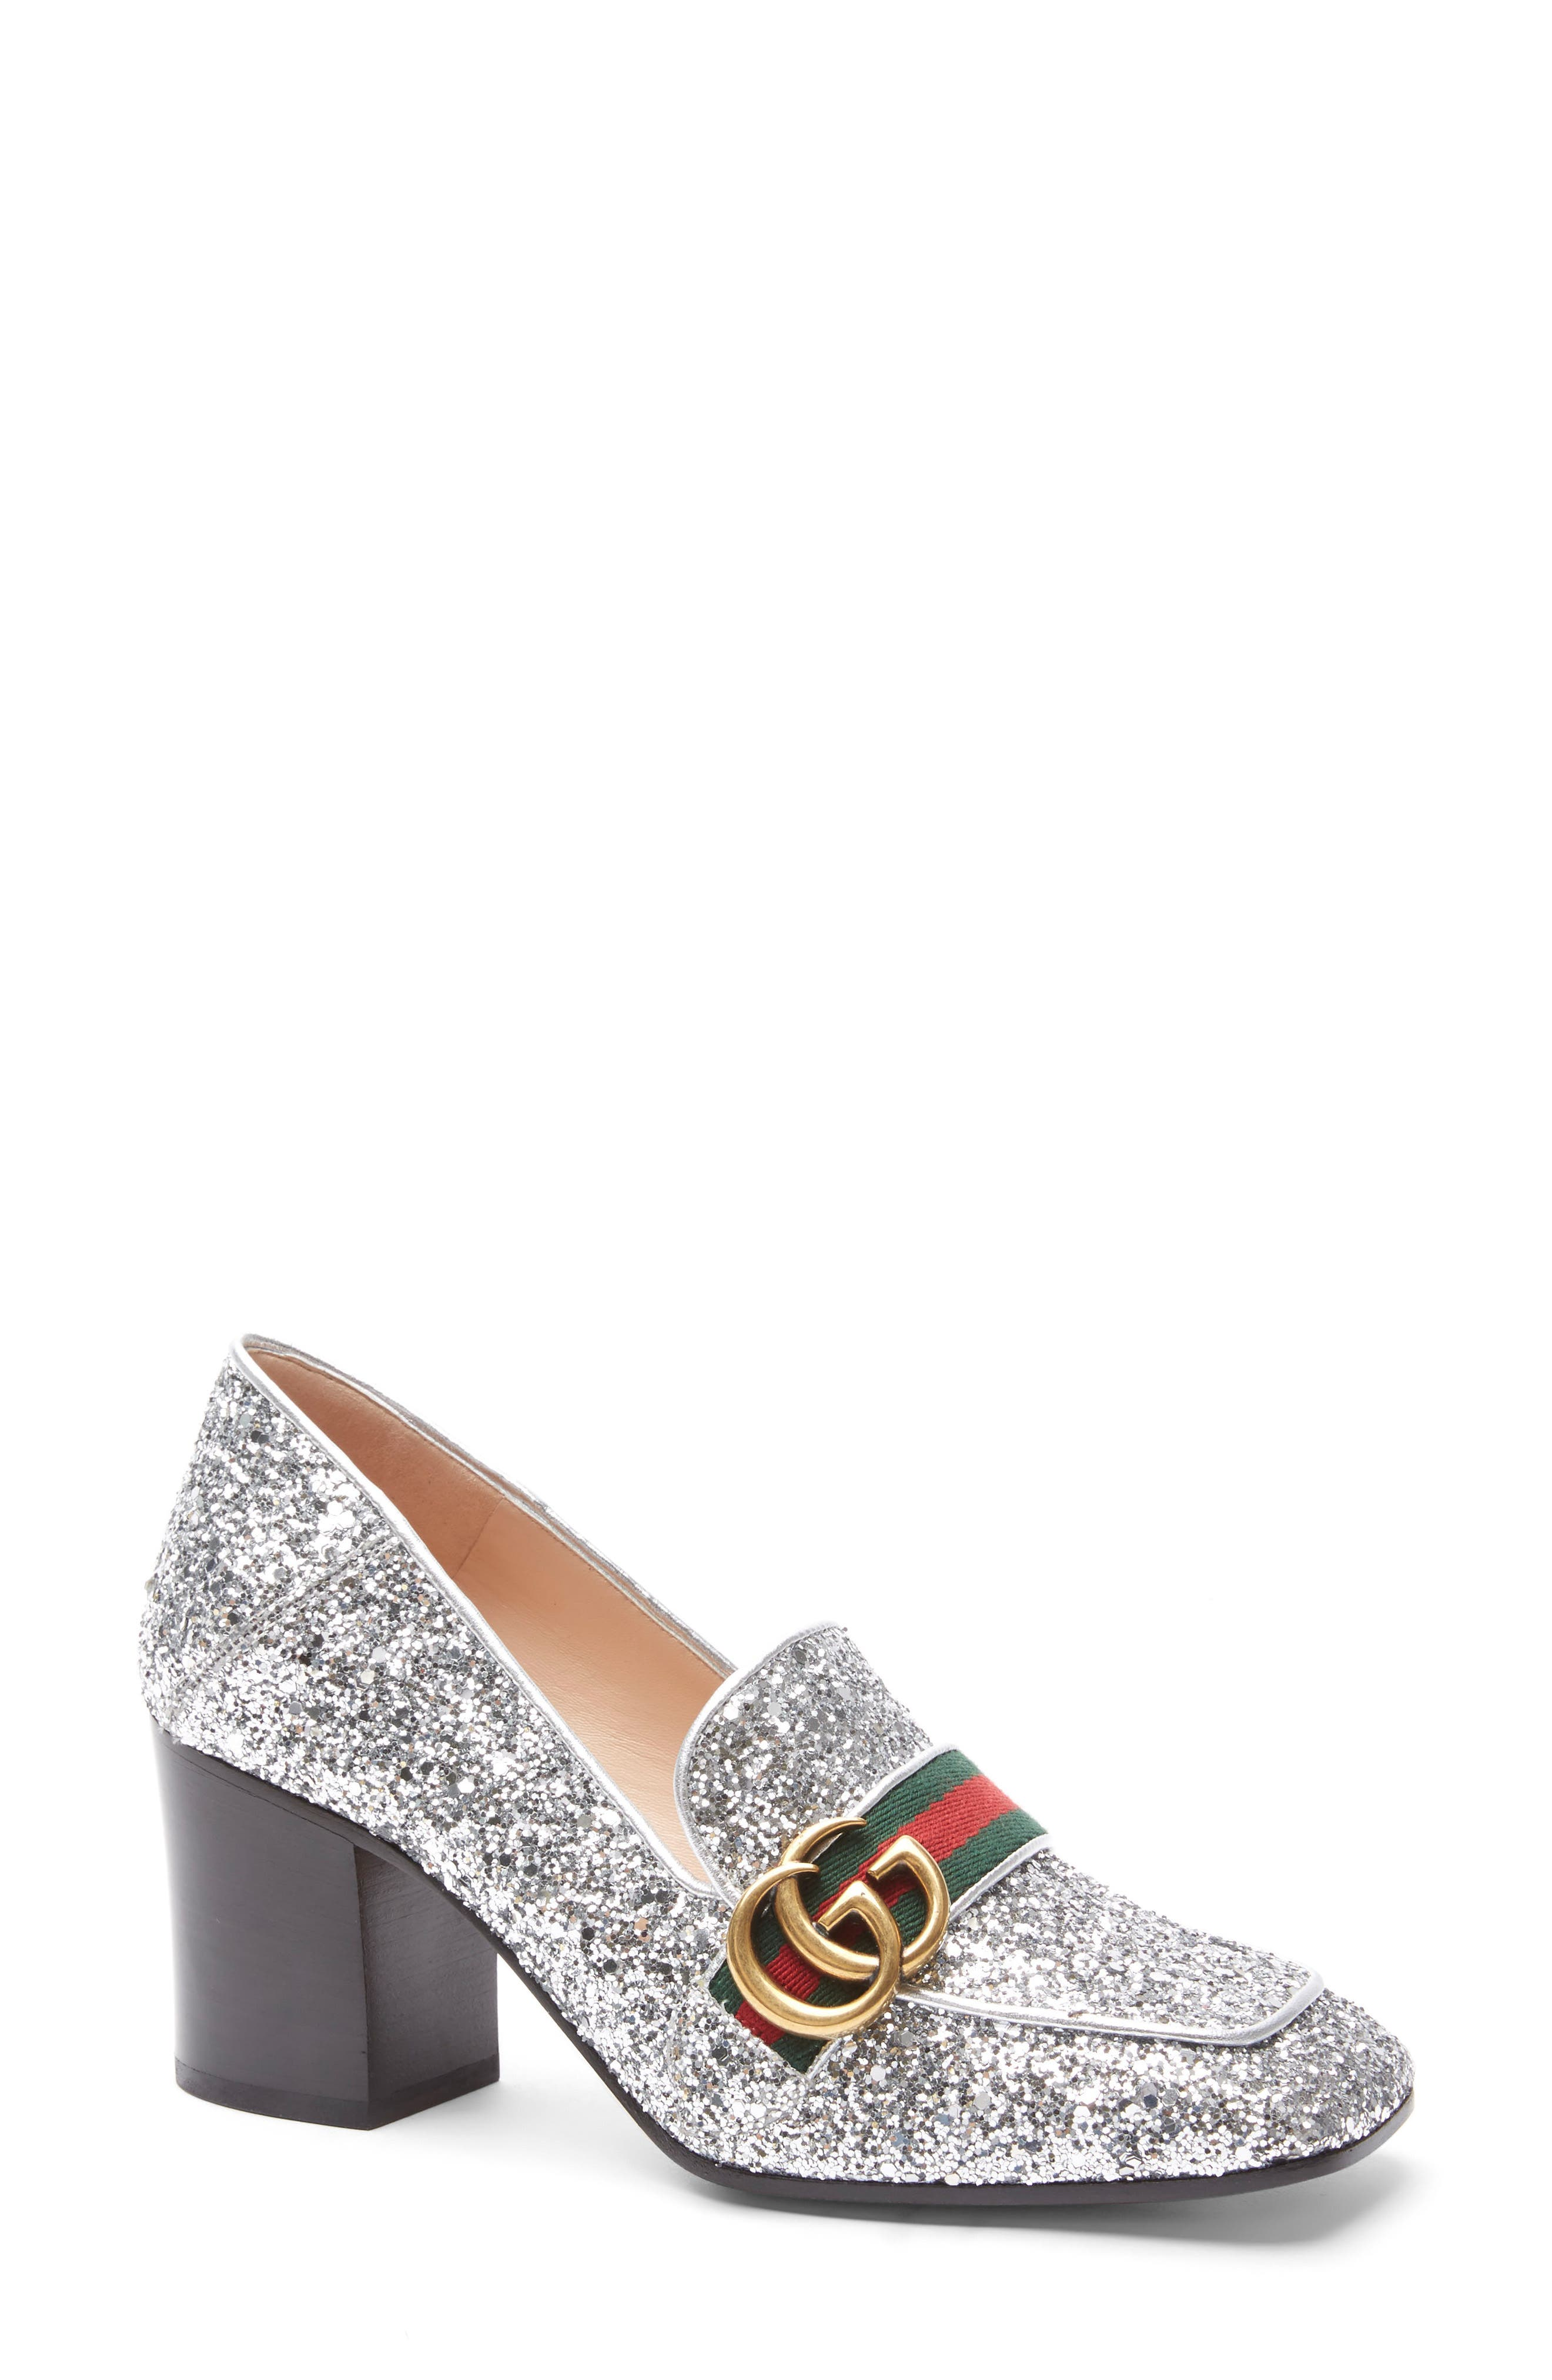 Alternate Image 1 Selected - Gucci Glitter Peyton Loafer Pump (Women)